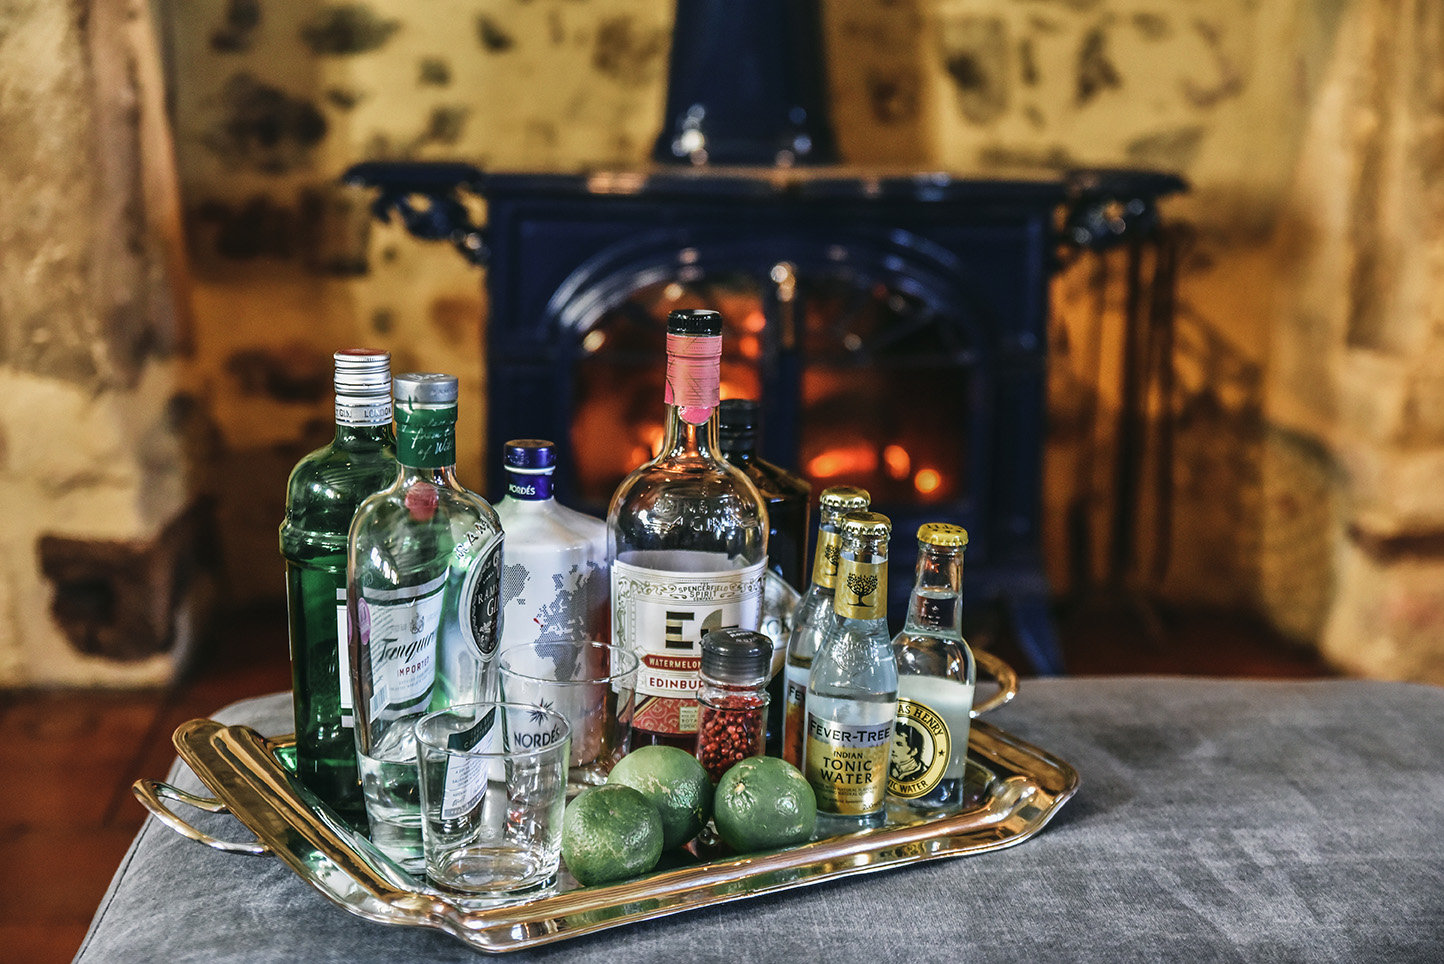 In the sitting-room of Le Mas, in front of a roaring fire, is a tray with a range of gins, tonics and limes